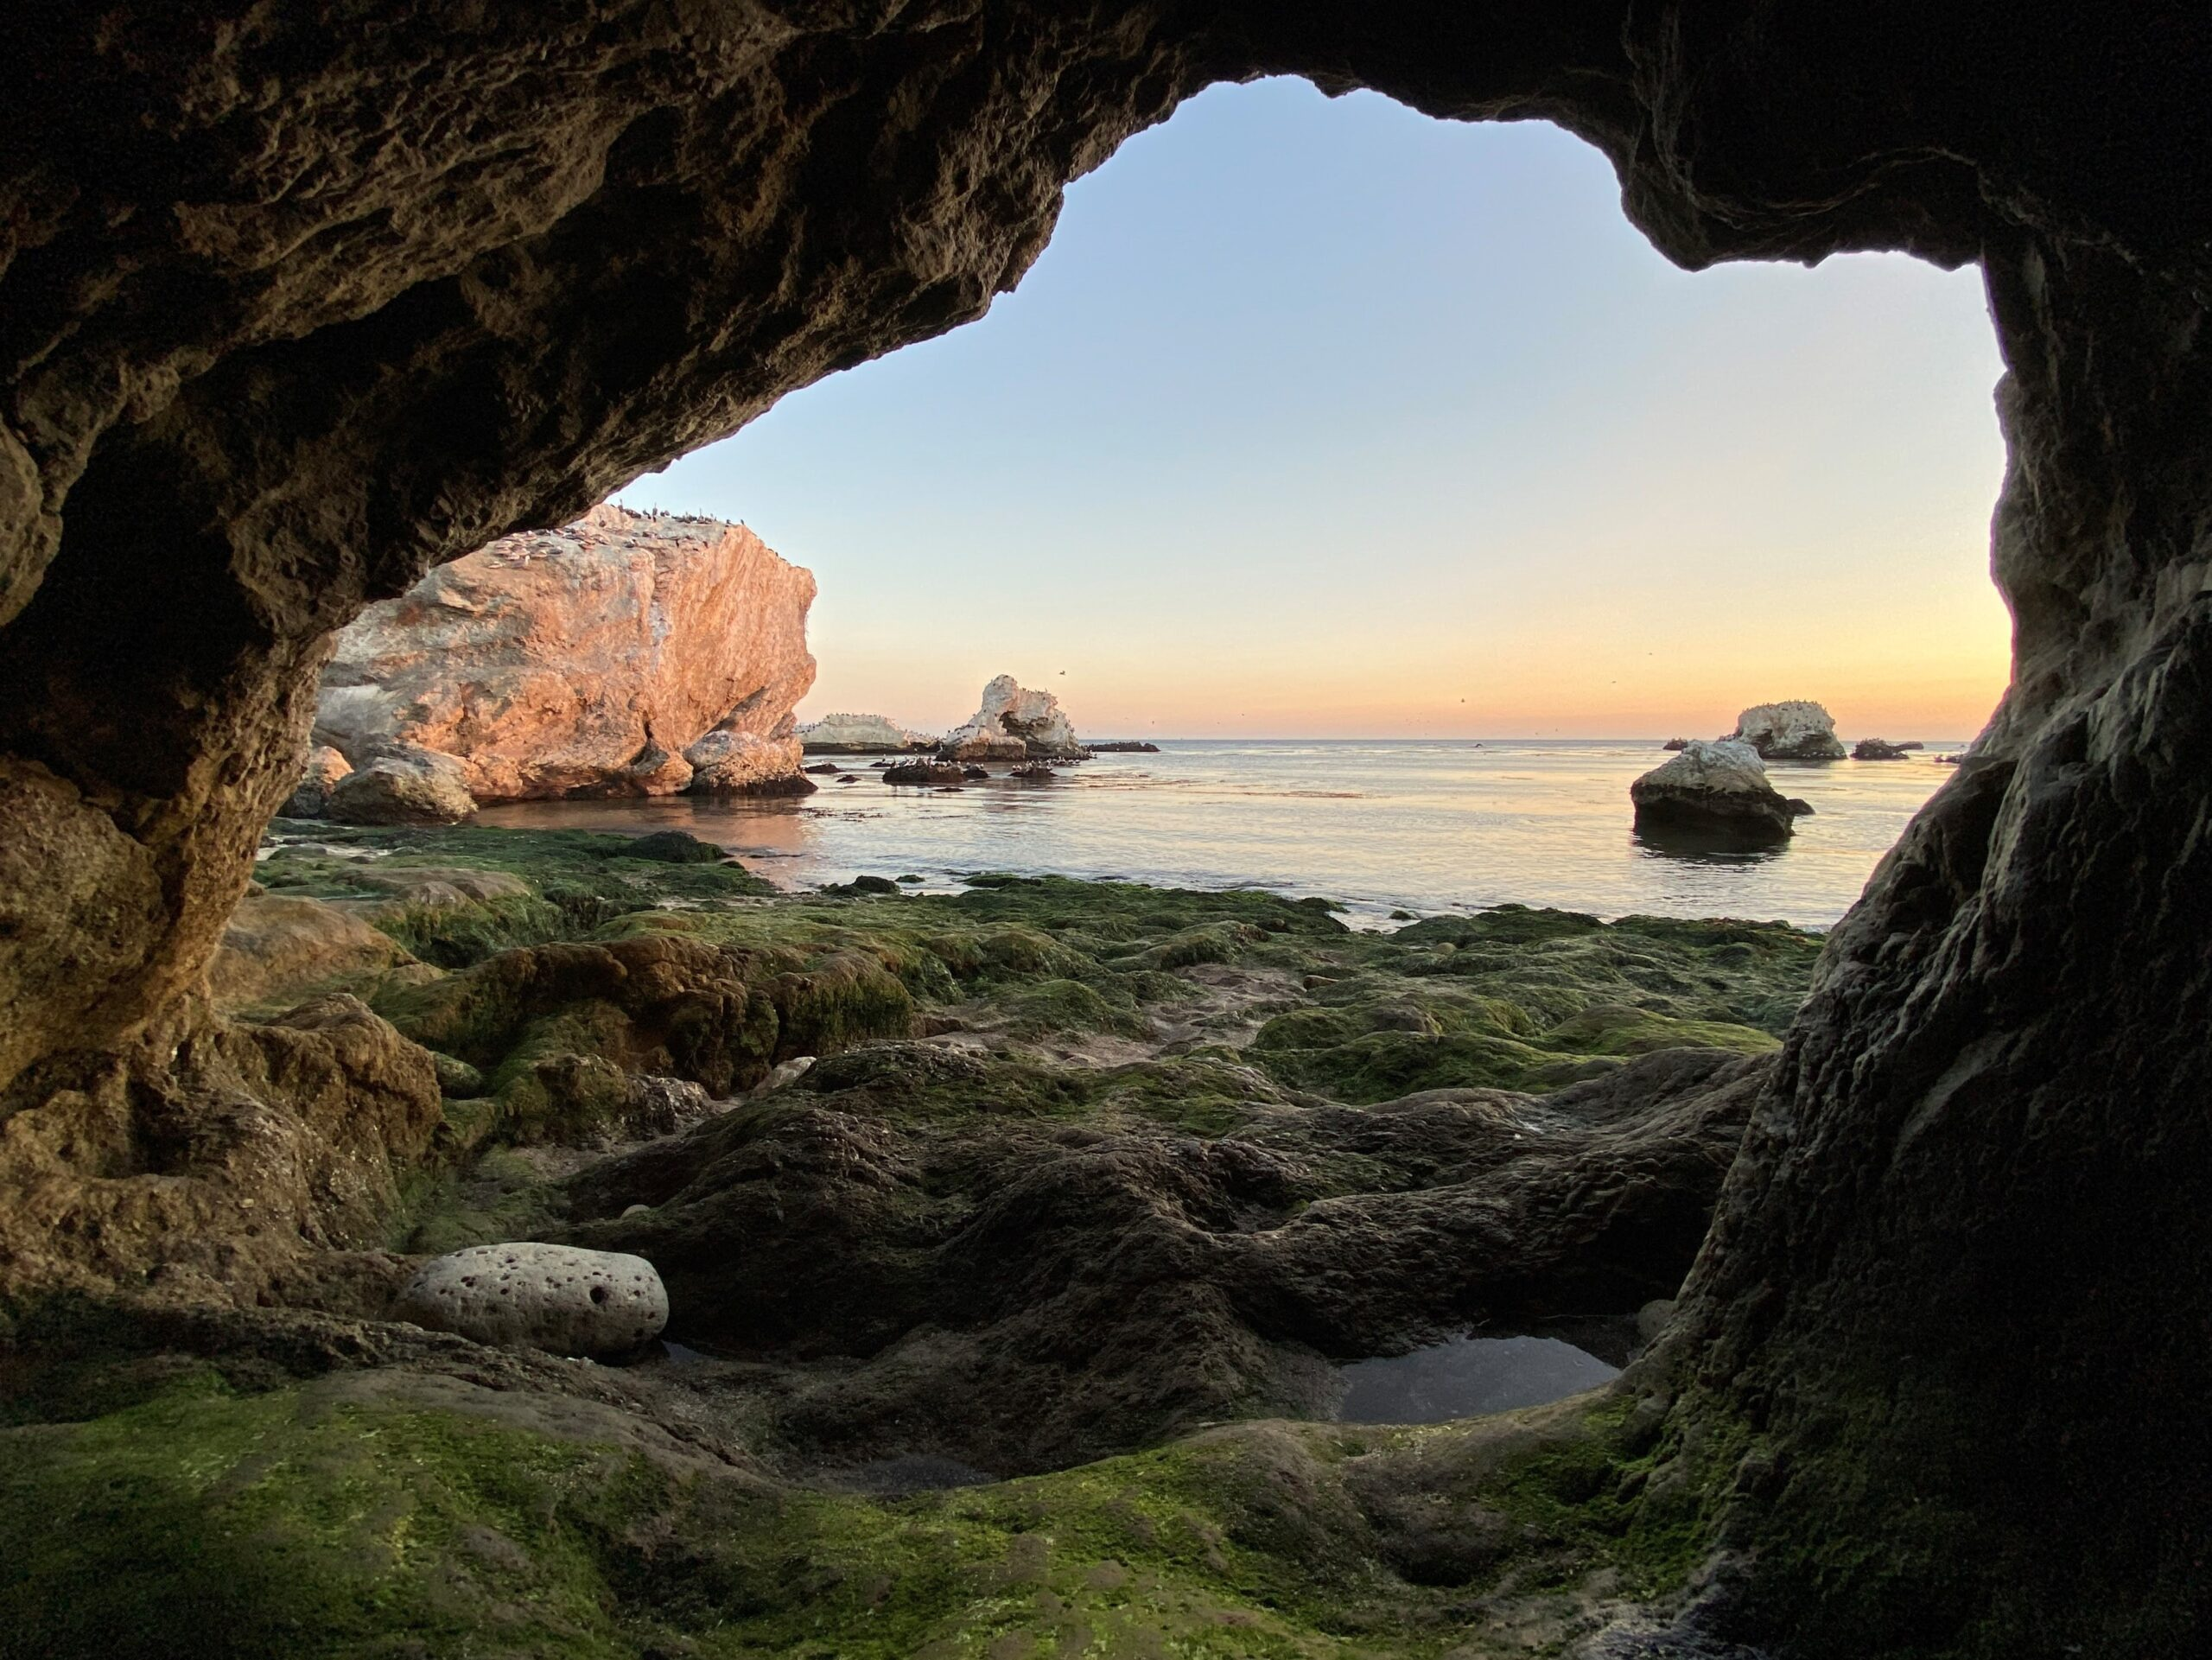 A photo of a cave opening that leads to the seashore